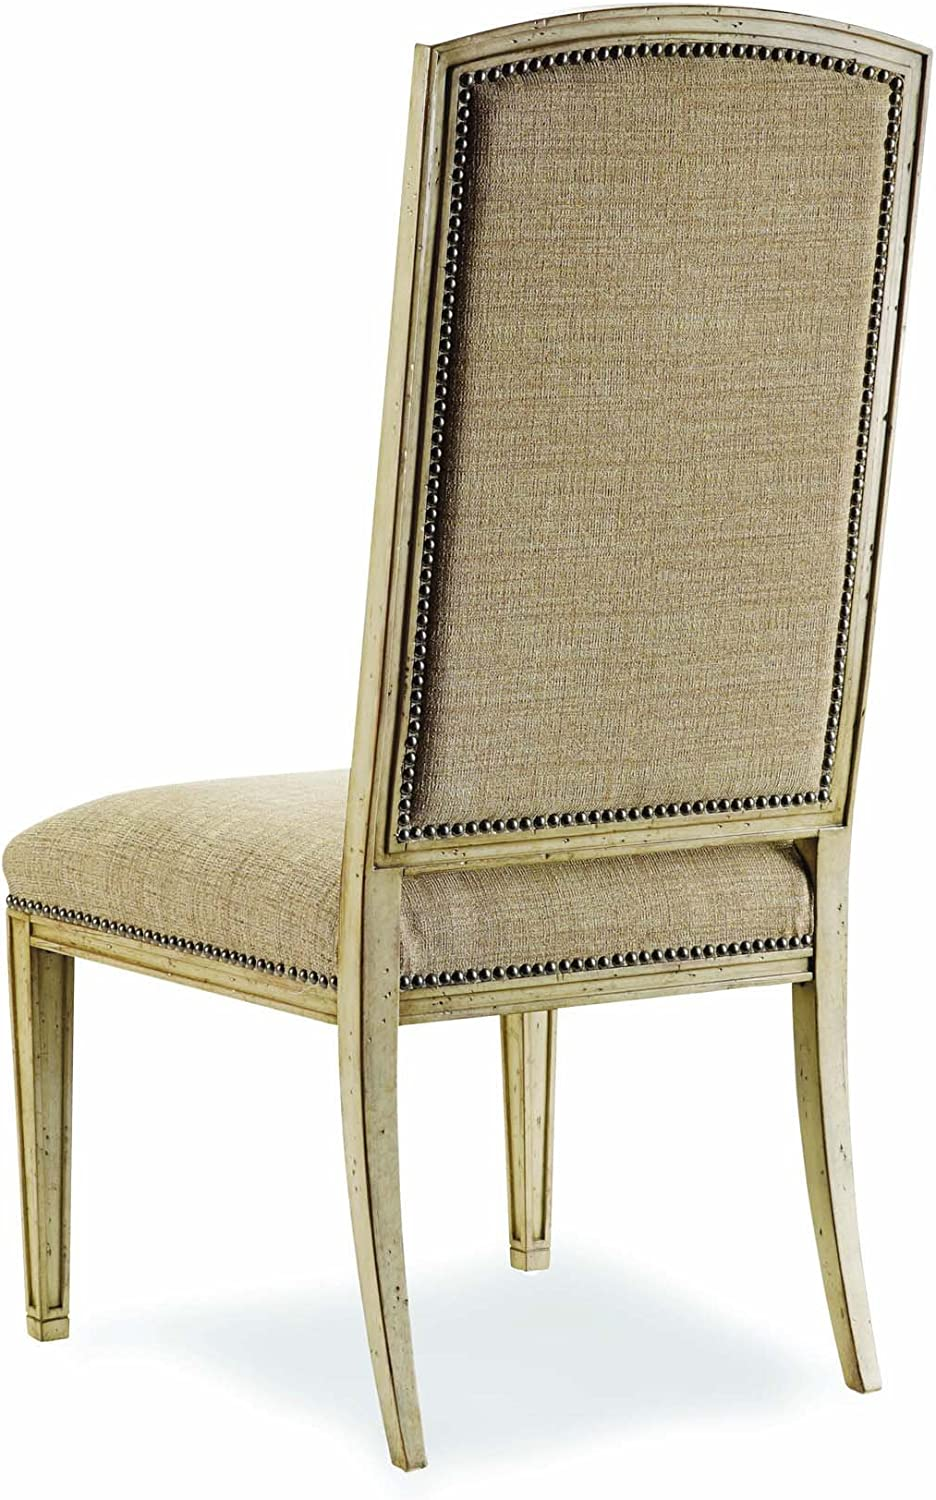 Hooker Furniture Sanctuary Mirage Dining Chair in Dune (Set of 2)